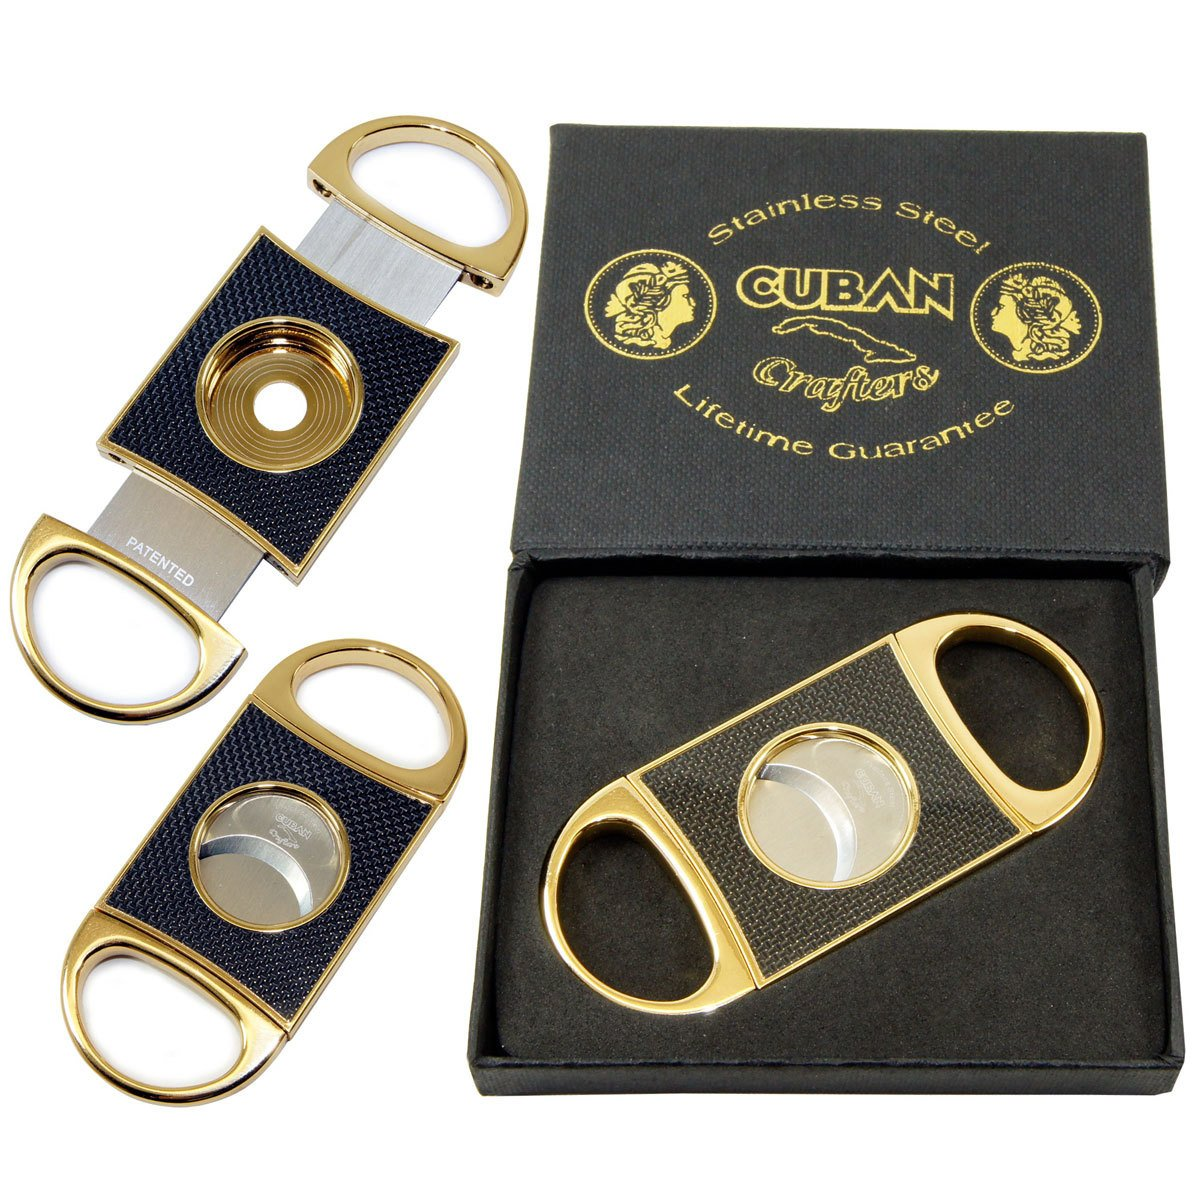 Original Cigar Cutter Gold Carbon Fiber Perfect Cutters